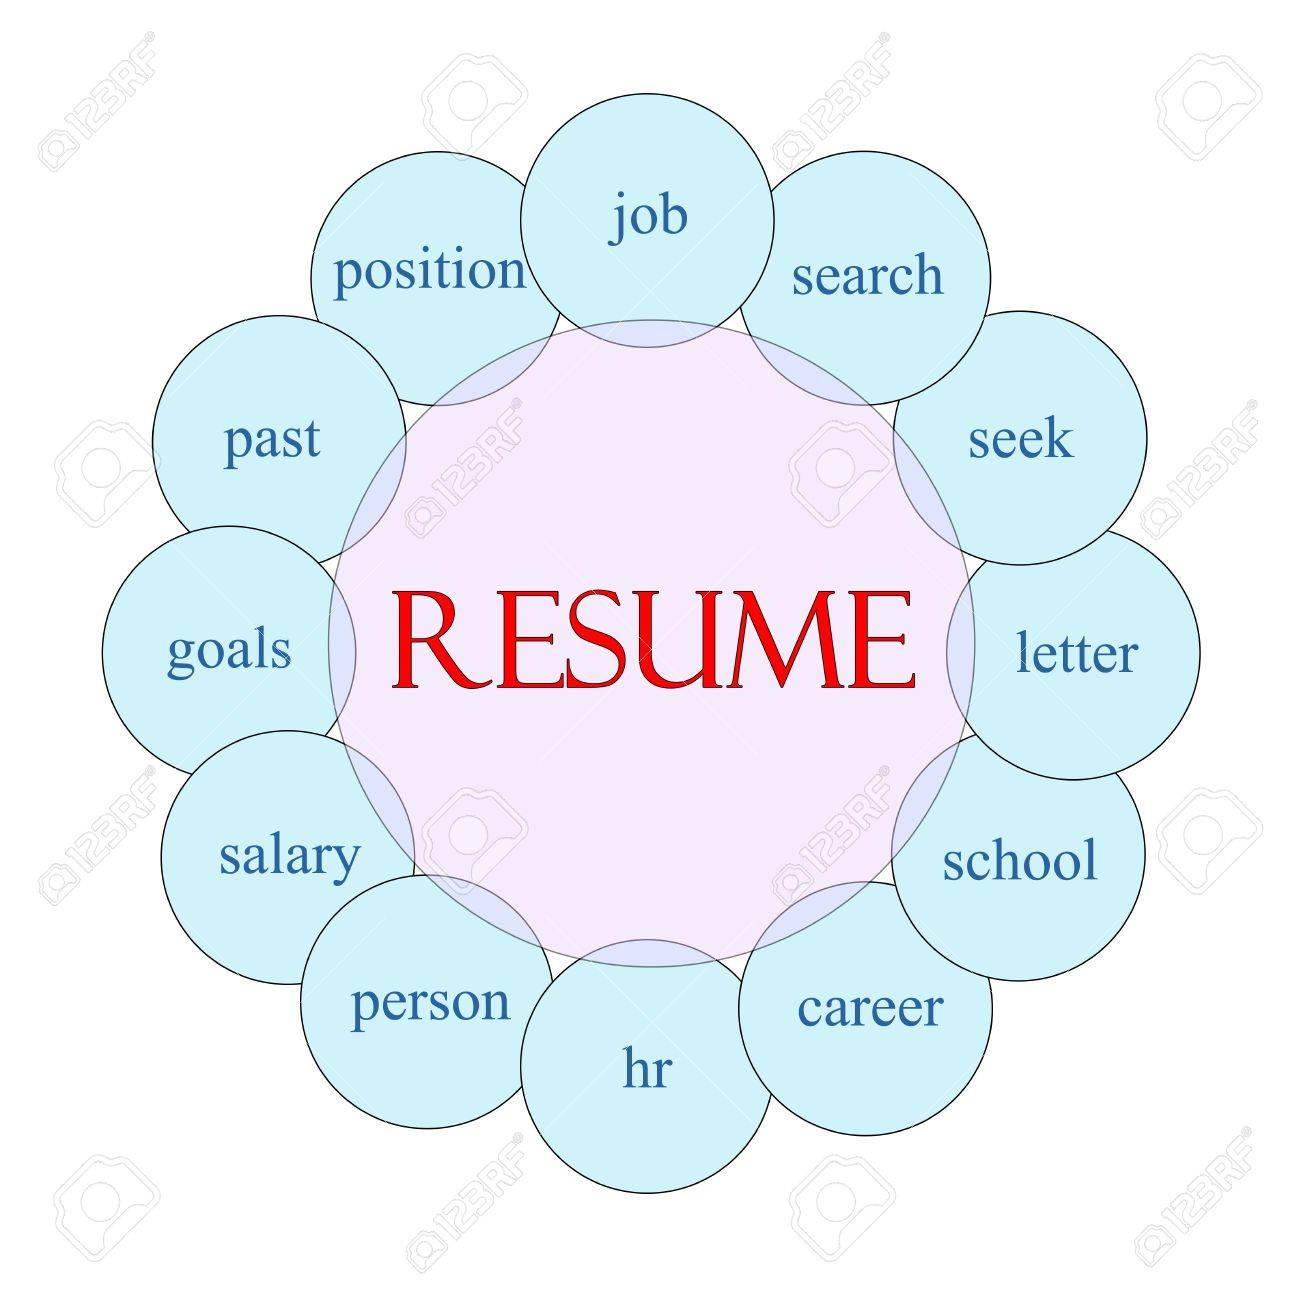 resume concept circular diagram in pink and blue great terms resume concept circular diagram in pink and blue great terms such as job search